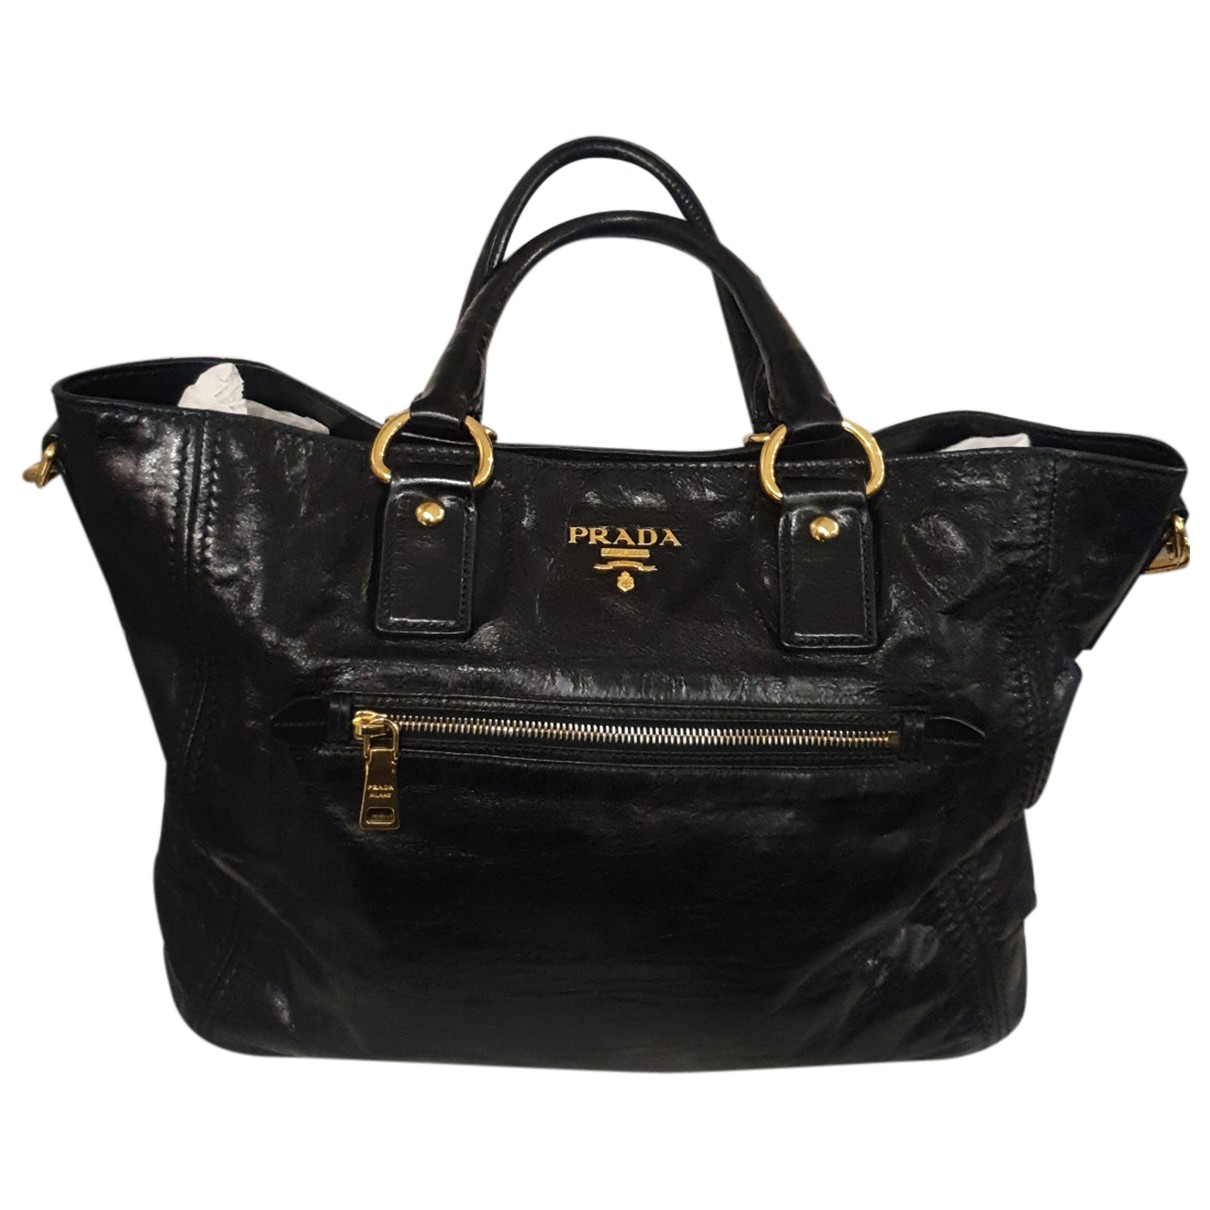 Prada N Black Leather handbag for Women N